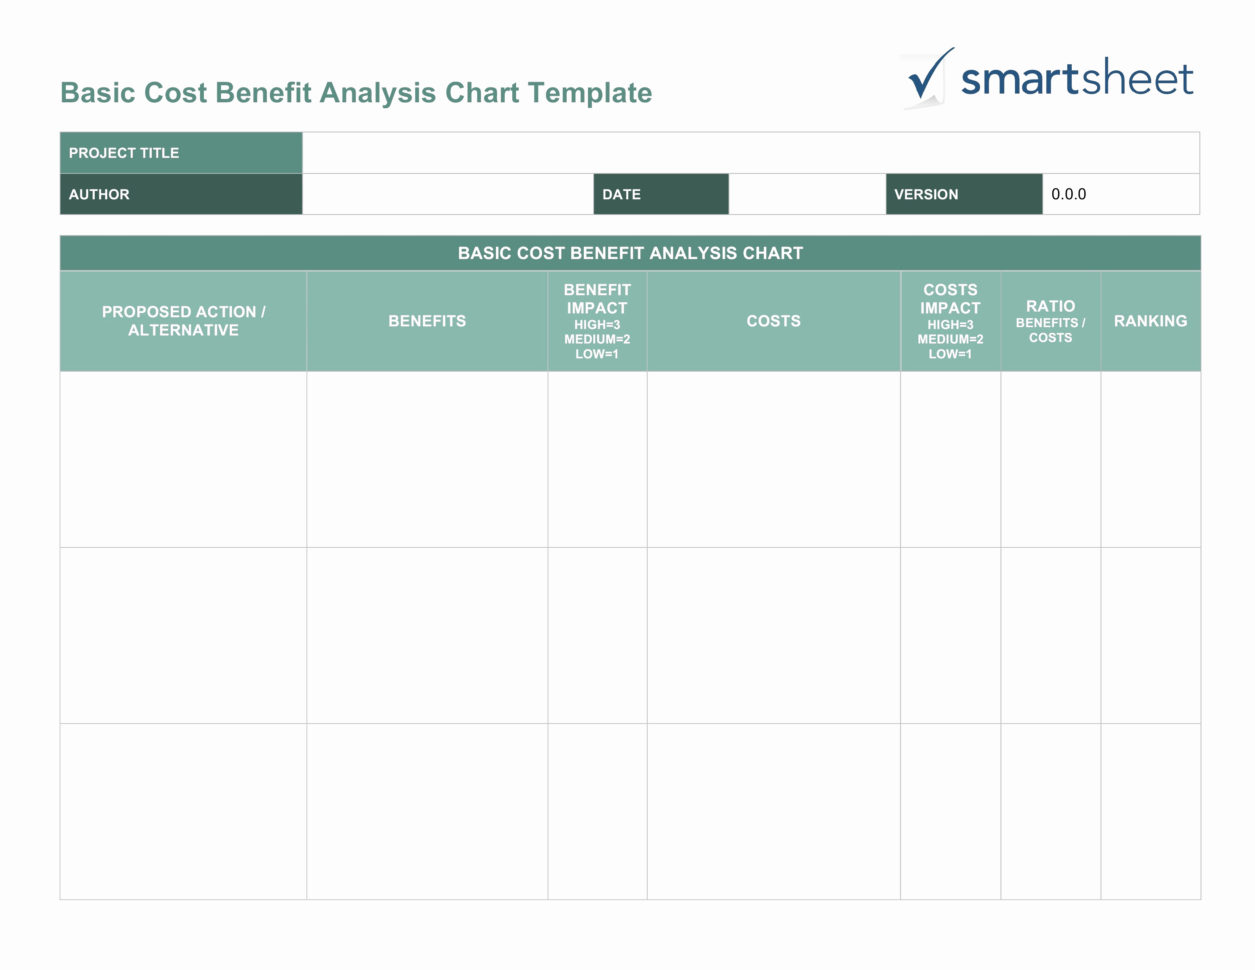 Pavement Life Cycle Cost Analysis Spreadsheet Pertaining To Life Cycle Cost Analysis Spreadsheet Then 50 Elegant Pavement Life